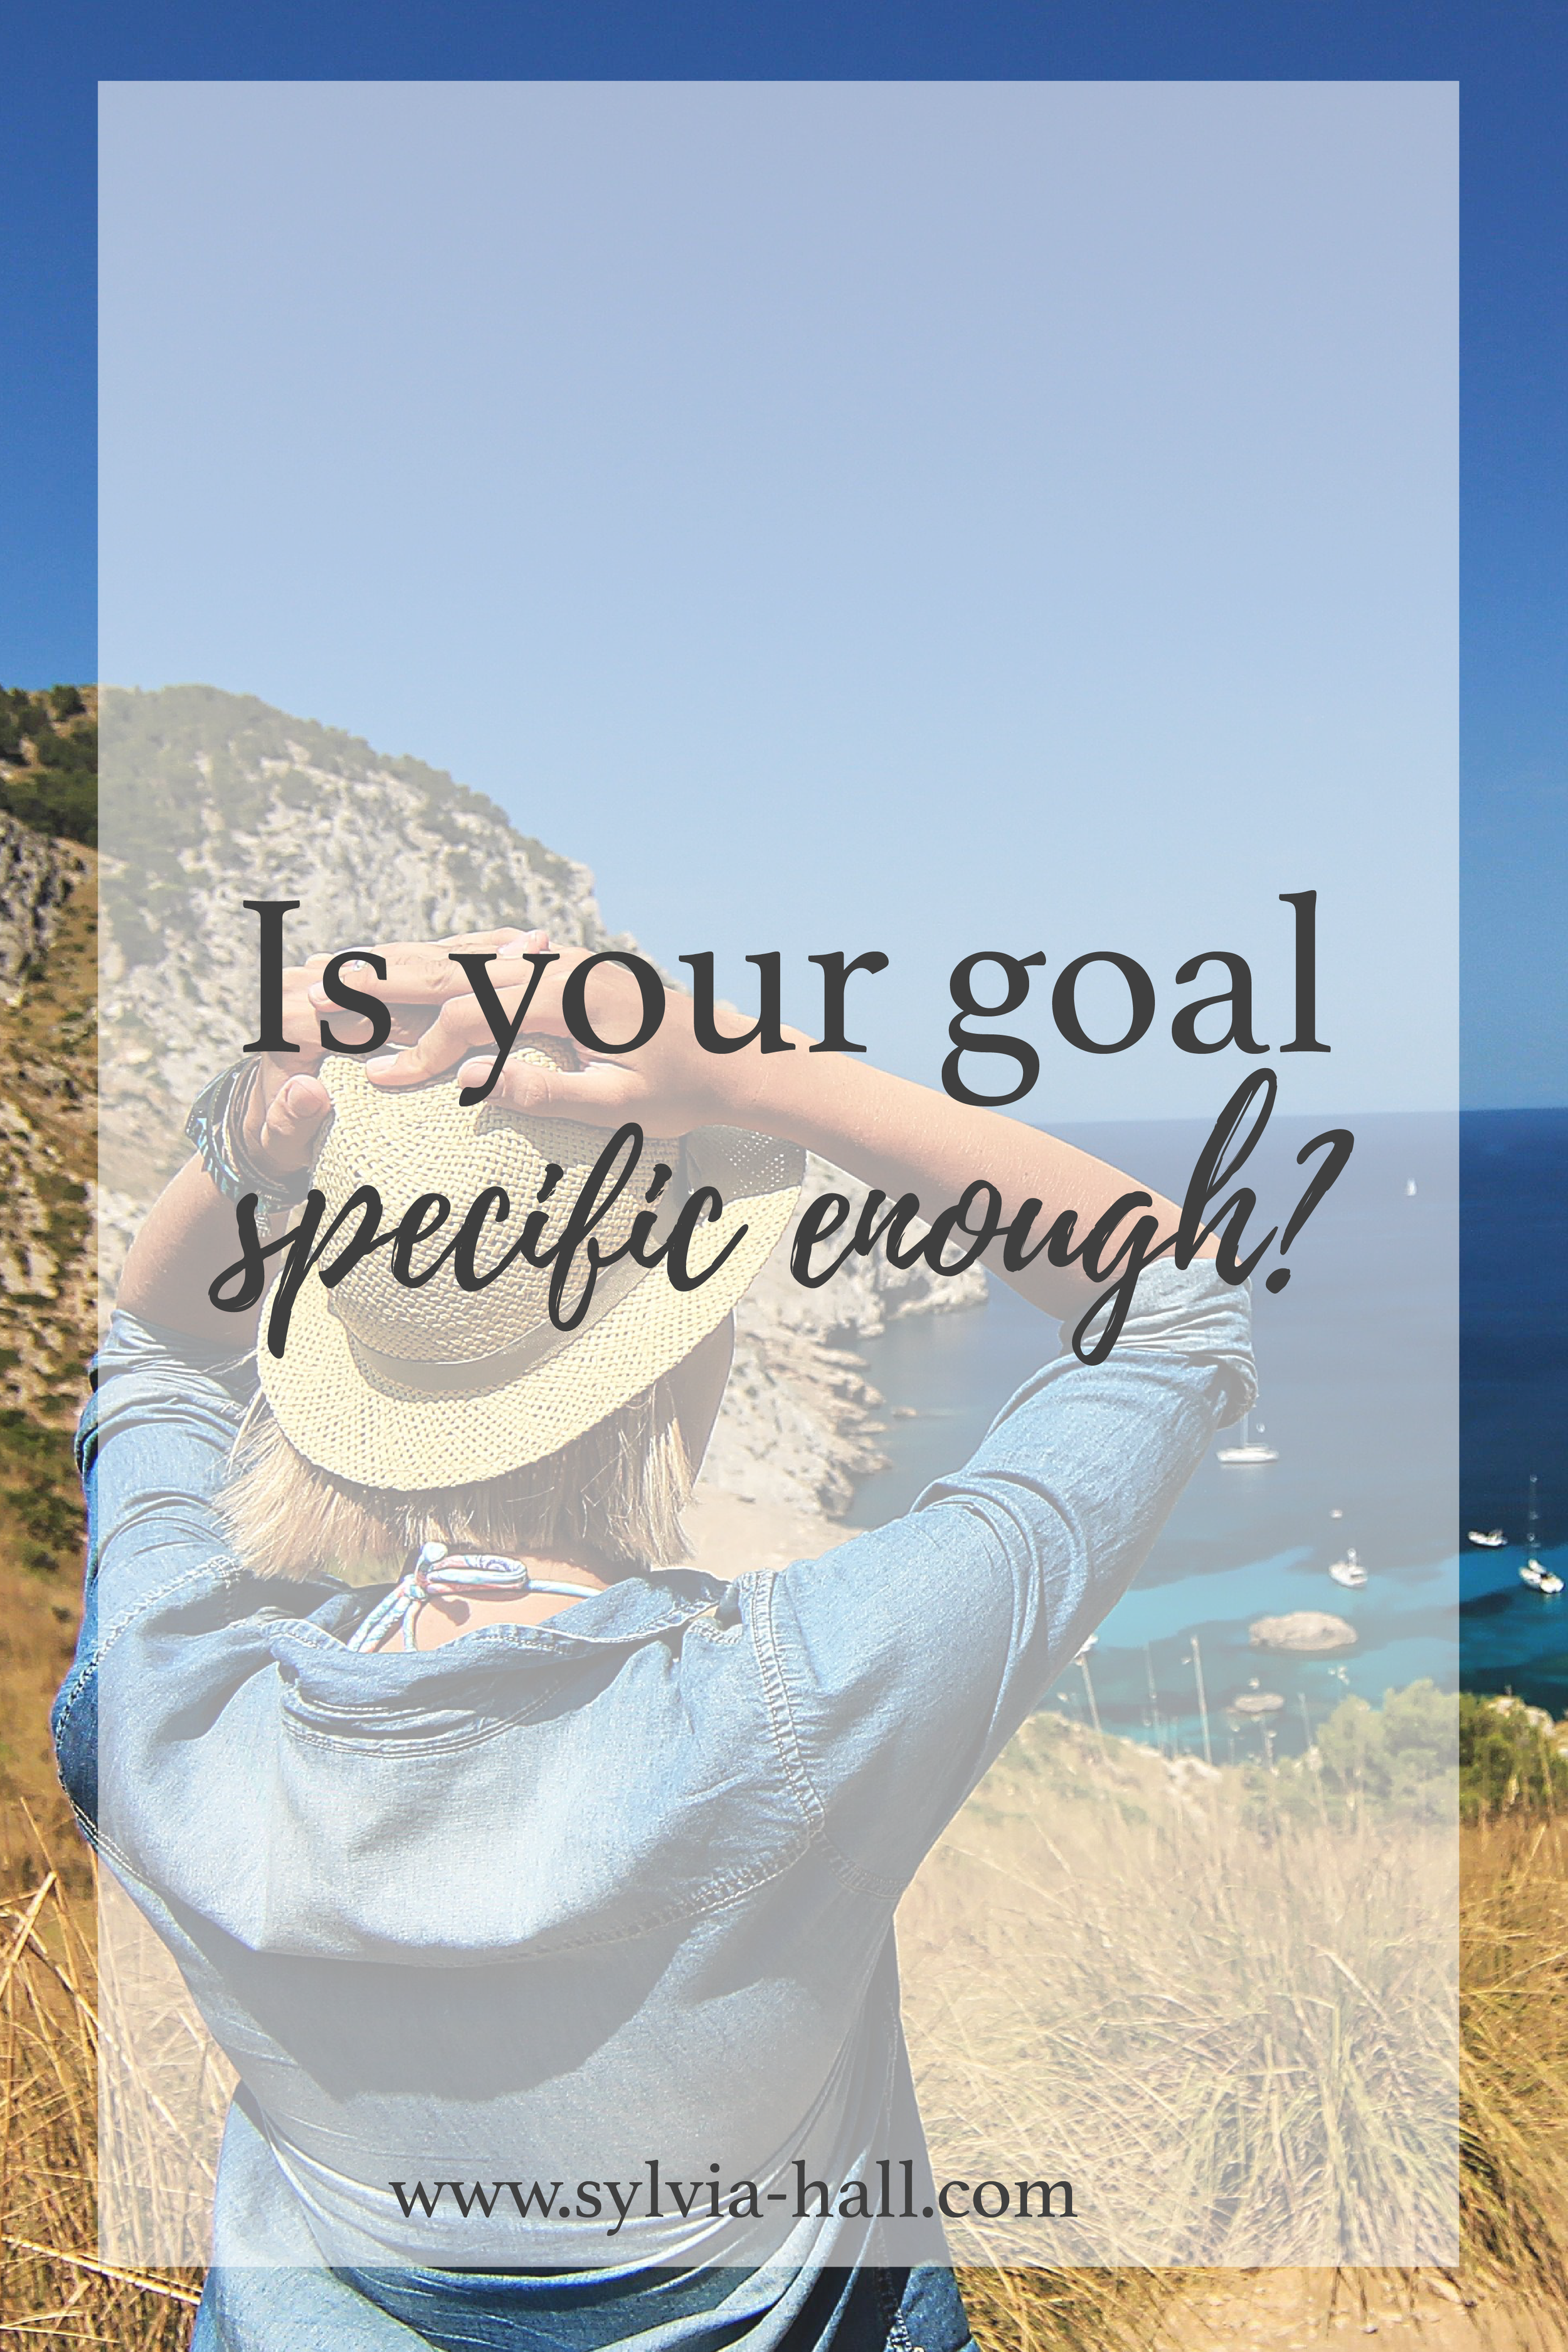 Is your goal specific enough?